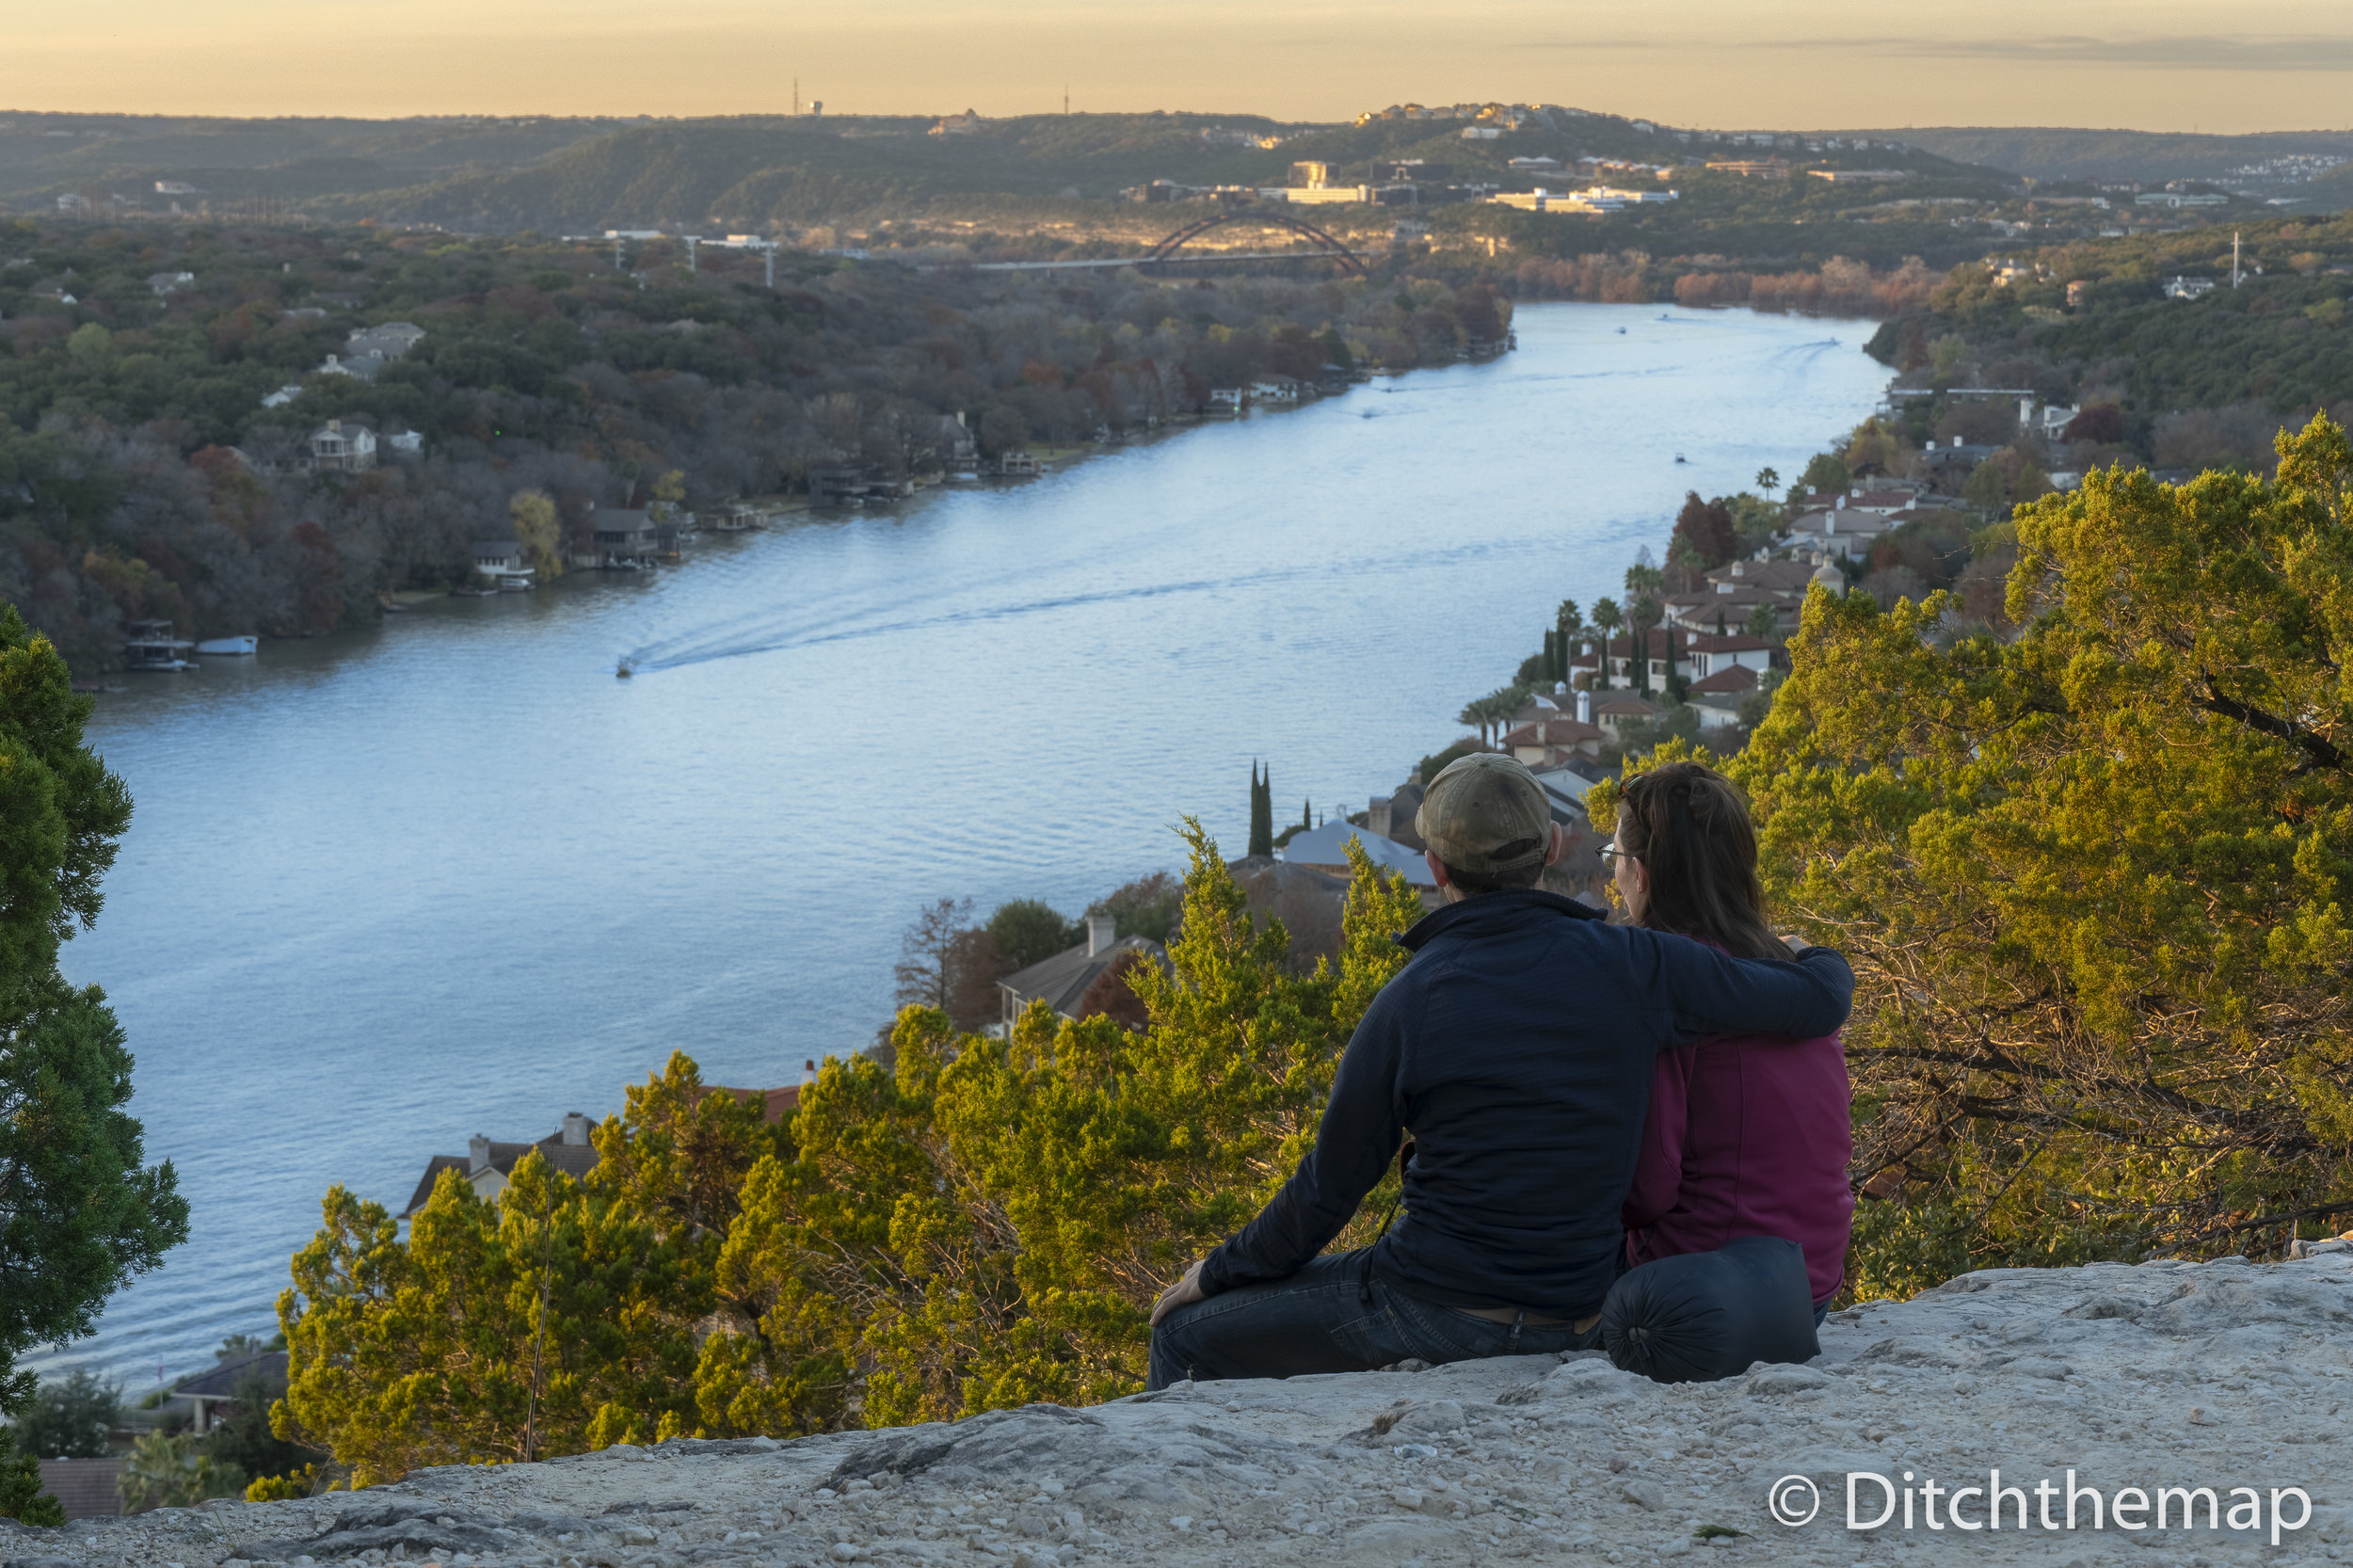 Catching Sunset Atop Mount Bonnell in Austin, Texas